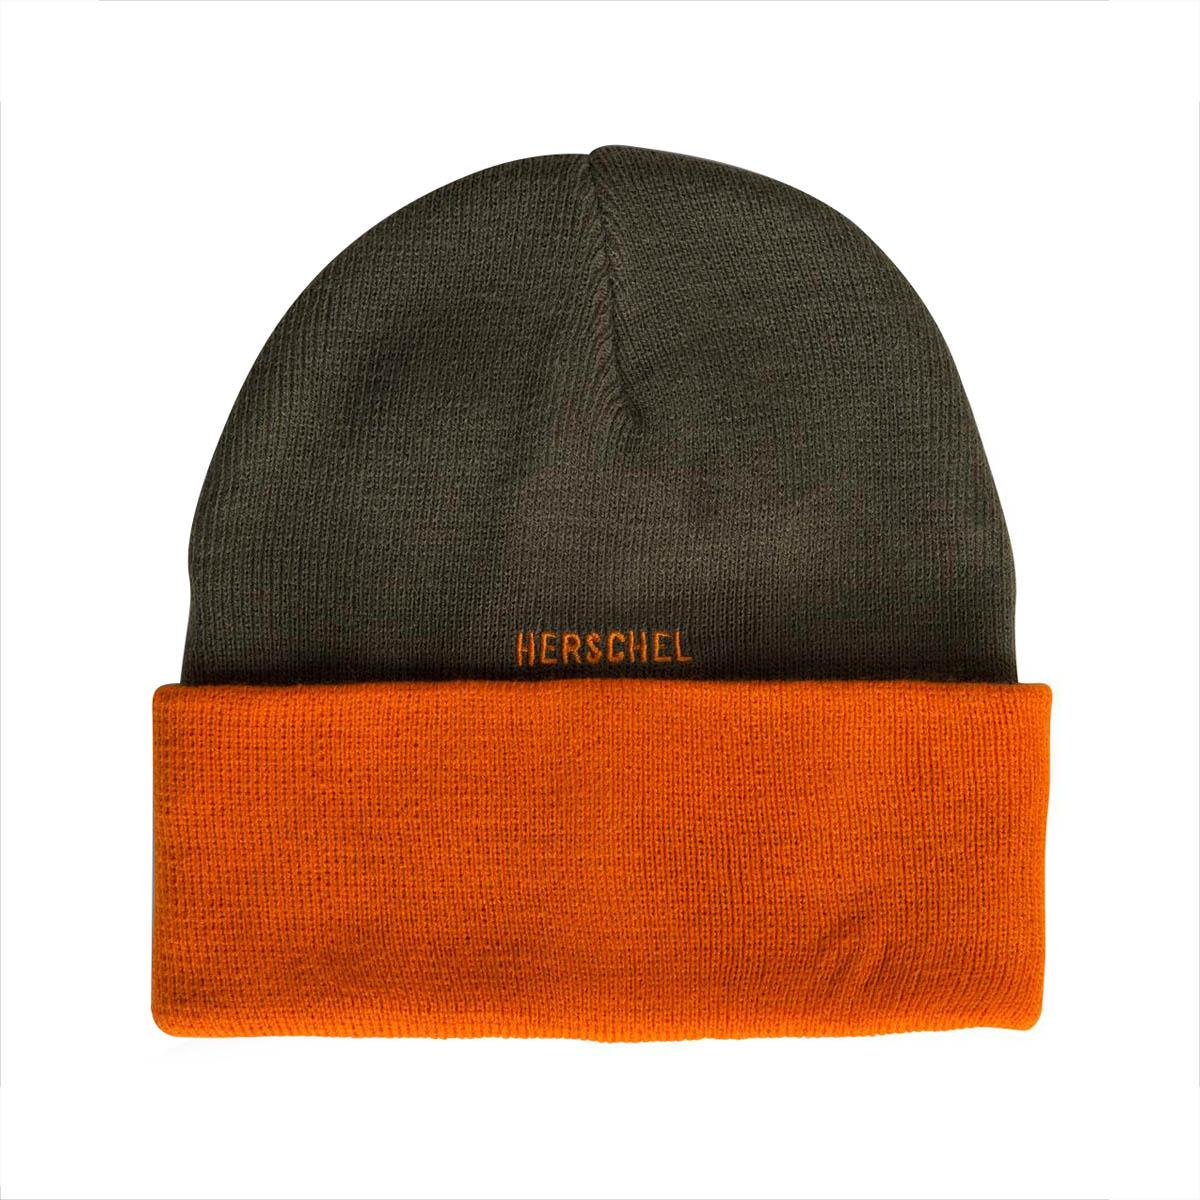 Herschel Supply Co. Rosewell Ivy Green   Orange Beanie in Green for ... 2c9bcc1c0258